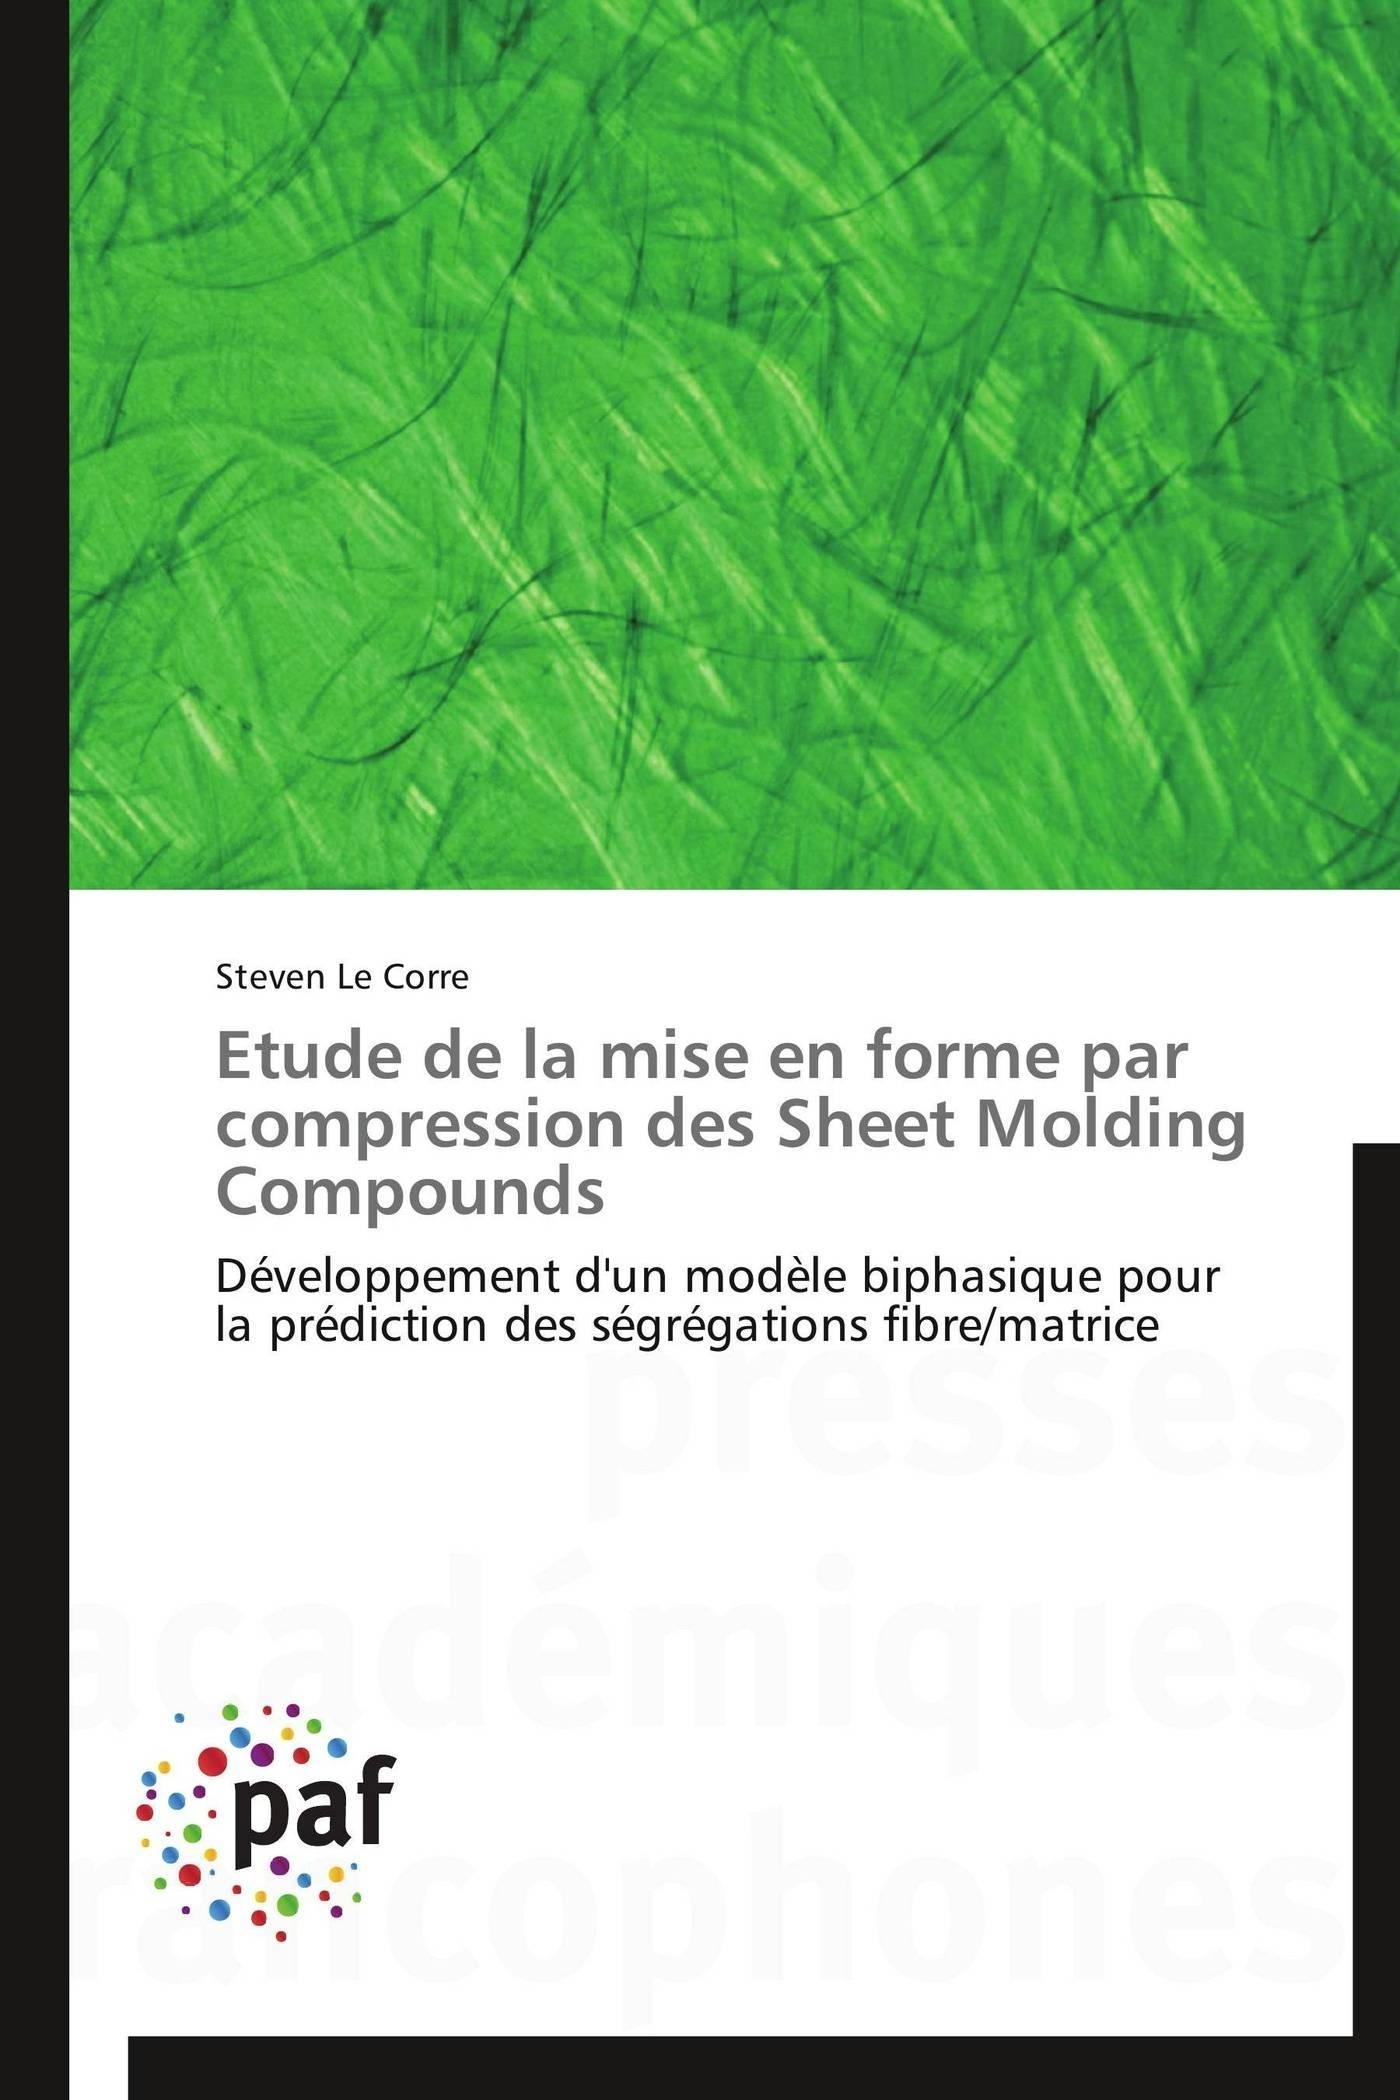 ETUDE DE LA MISE EN FORME PAR COMPRESSION DES SHEET MOLDING COMPOUNDS